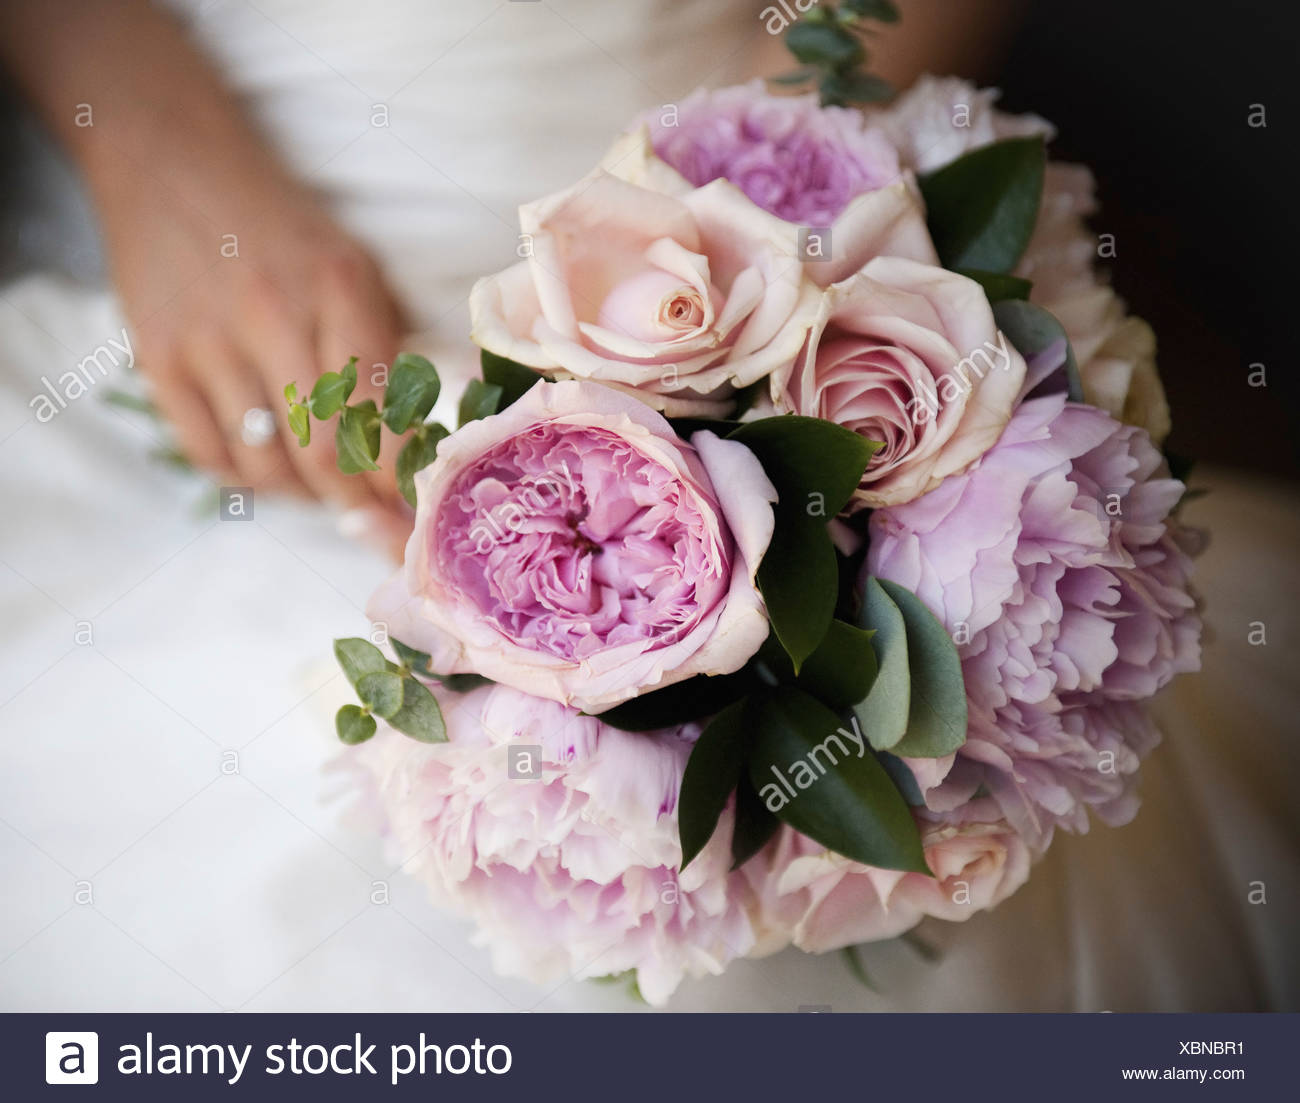 Wwwbouquet Sposait.A Bride Holding A Wedding Bouquet Of Roses And Peonies Pink And